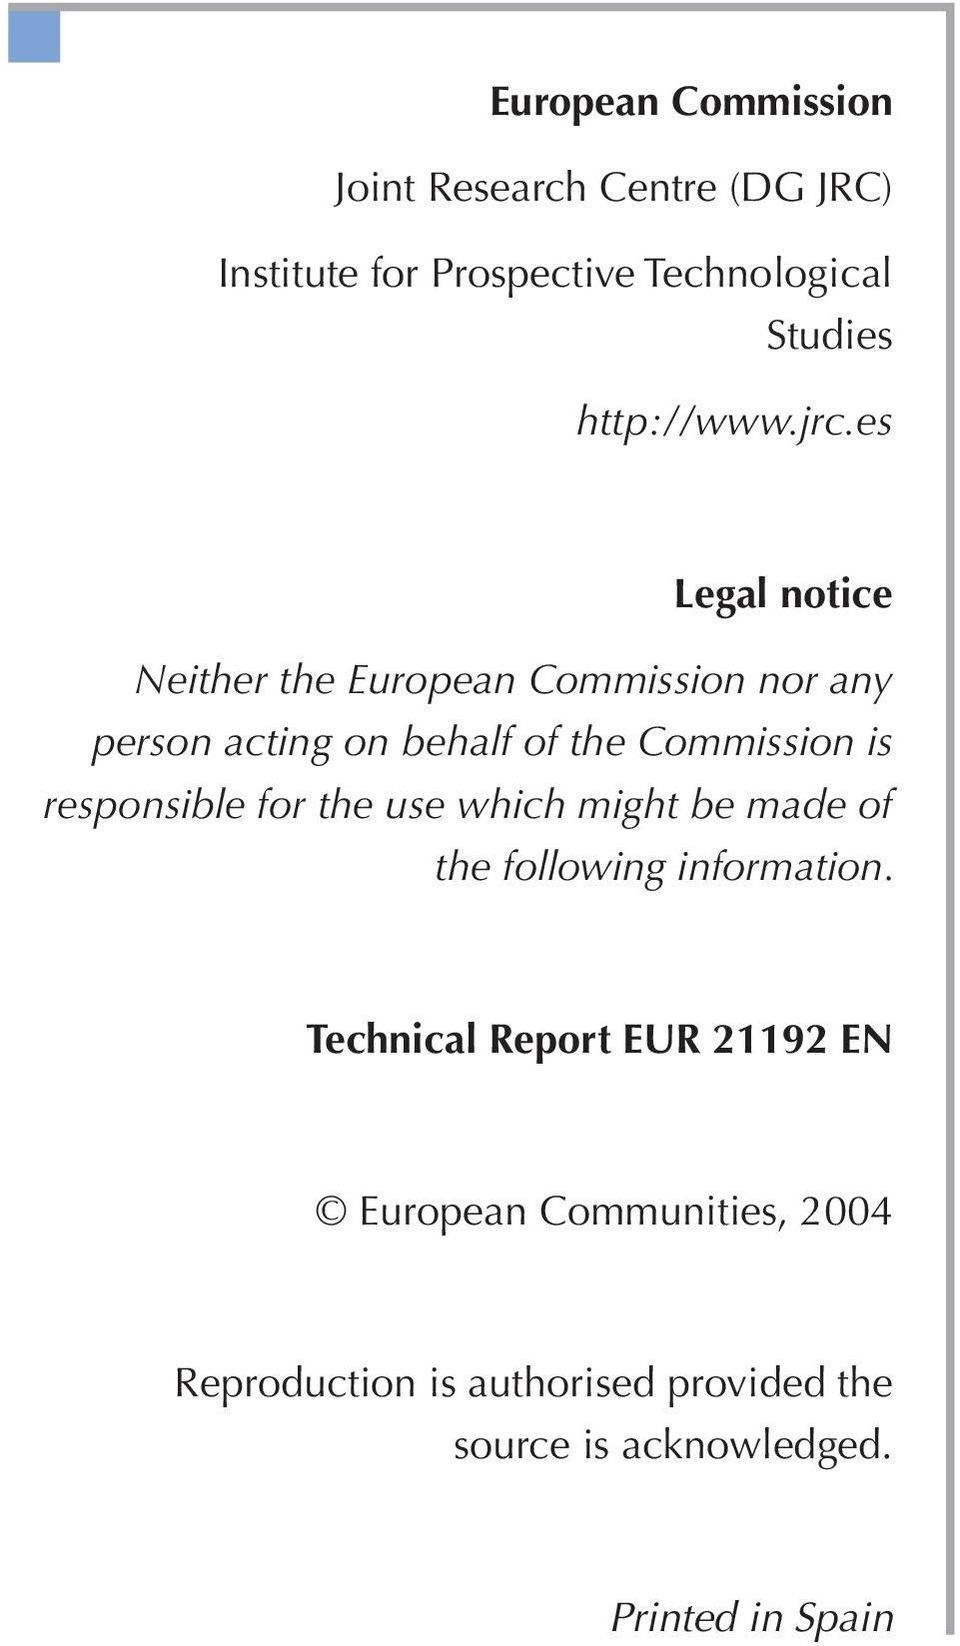 es Legal notice Neither the European Commission nor any person acting on behalf of the Commission is